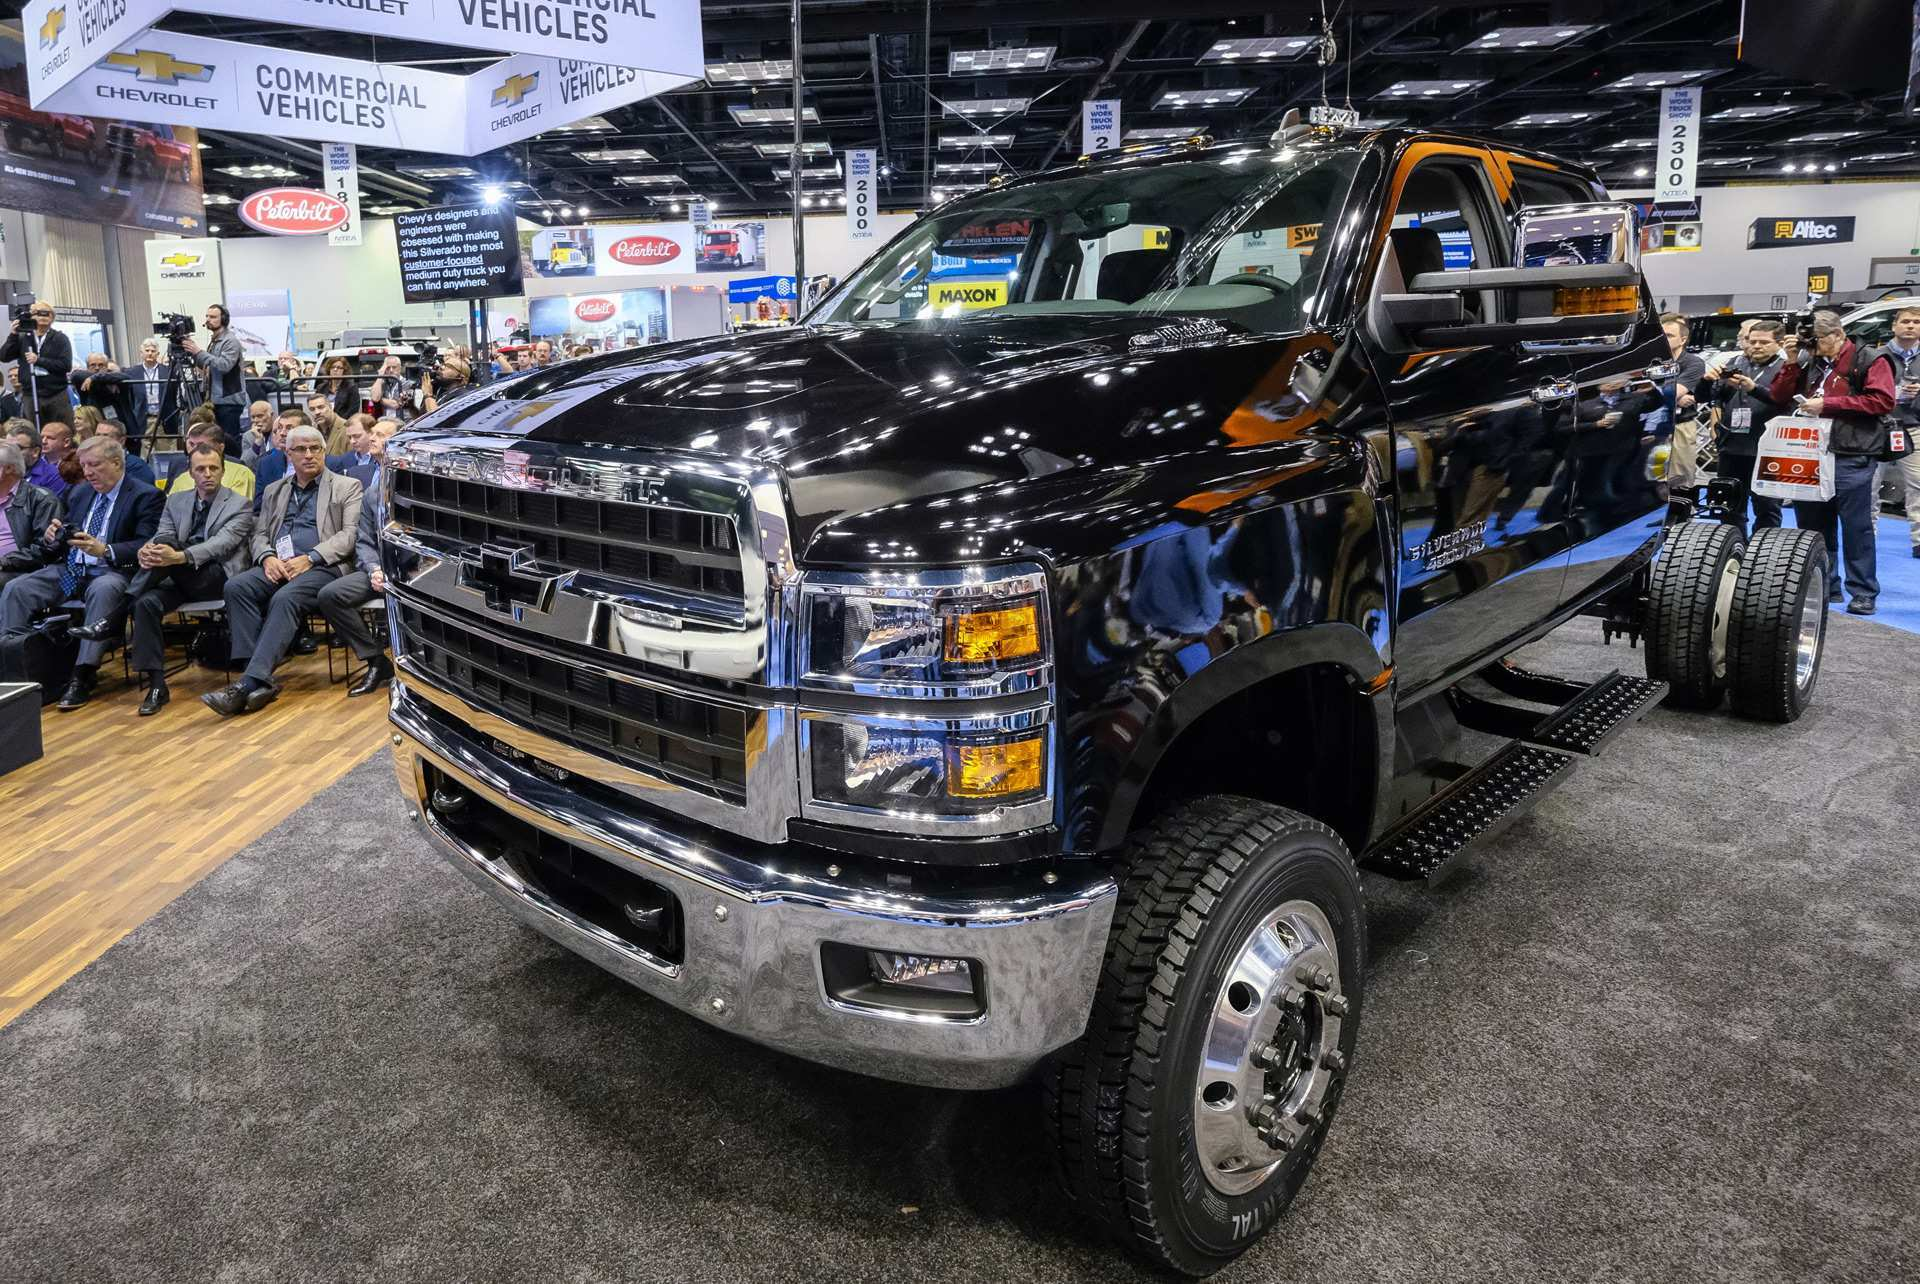 90 Great 2019 Dodge 4500 Images by 2019 Dodge 4500